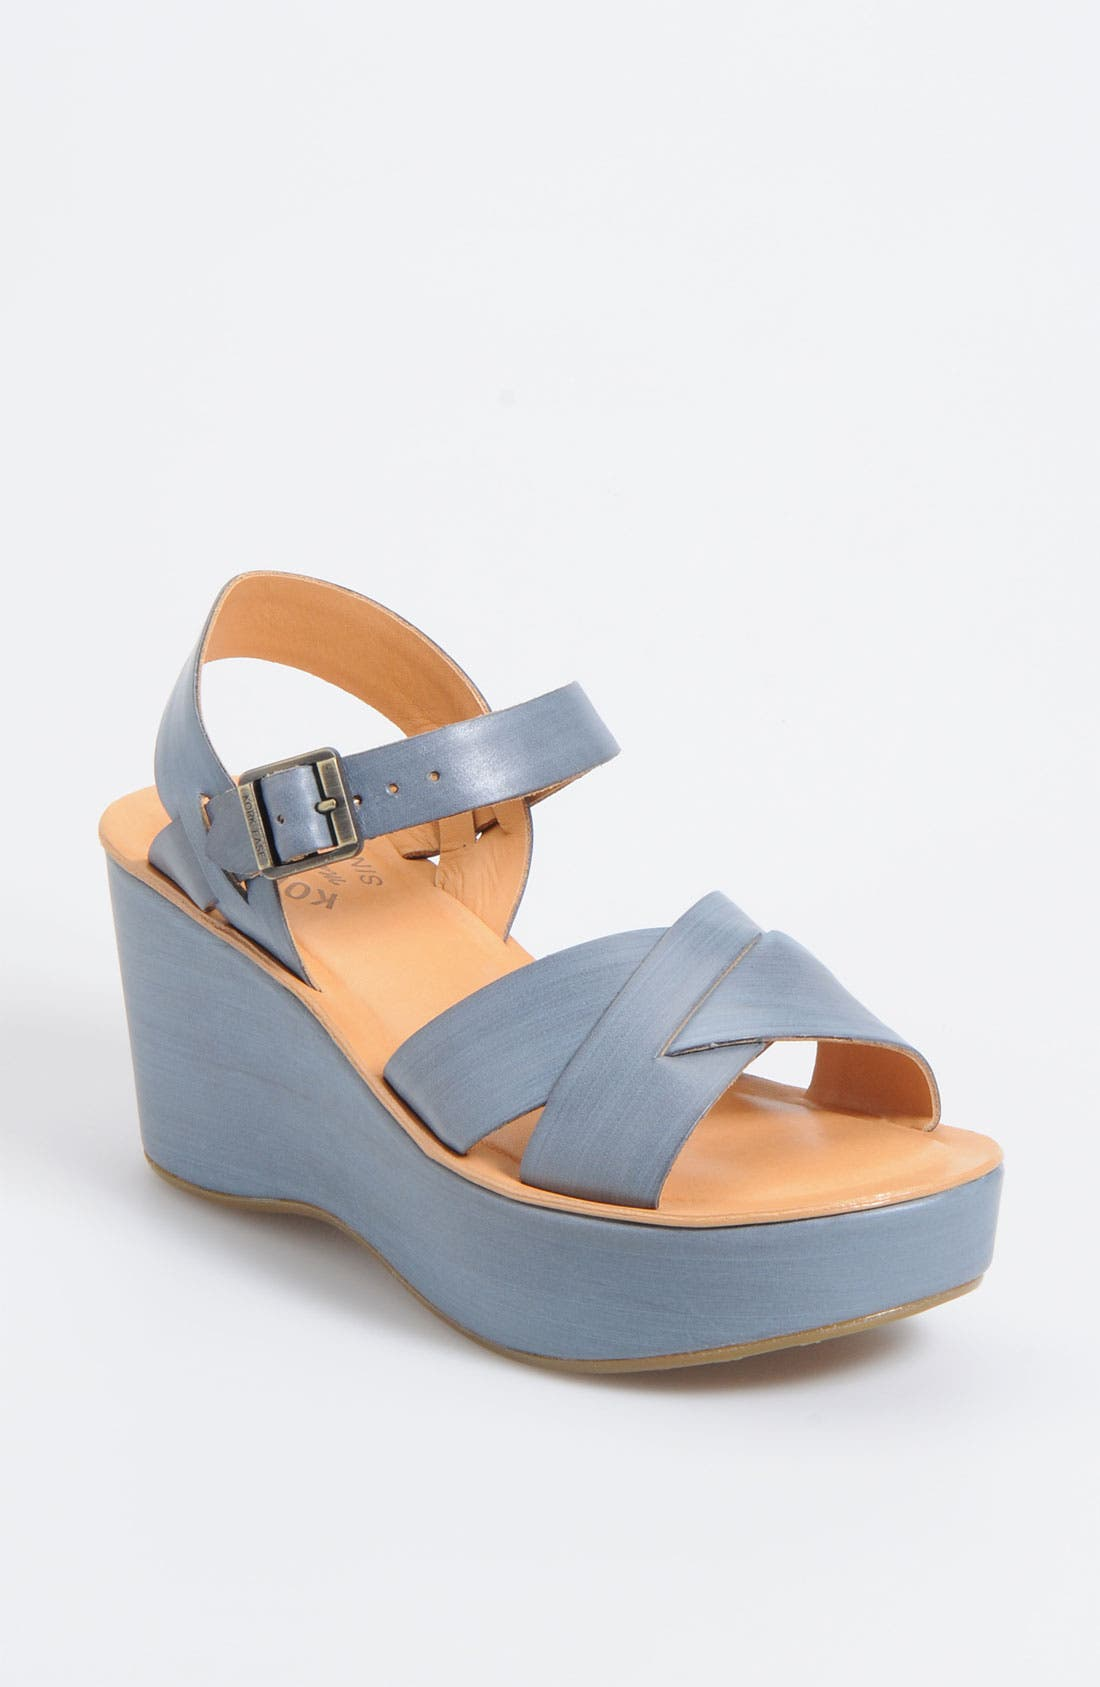 Main Image - Kork-Ease 'Ava' Wedge Sandal (Nordstrom Exclusive)